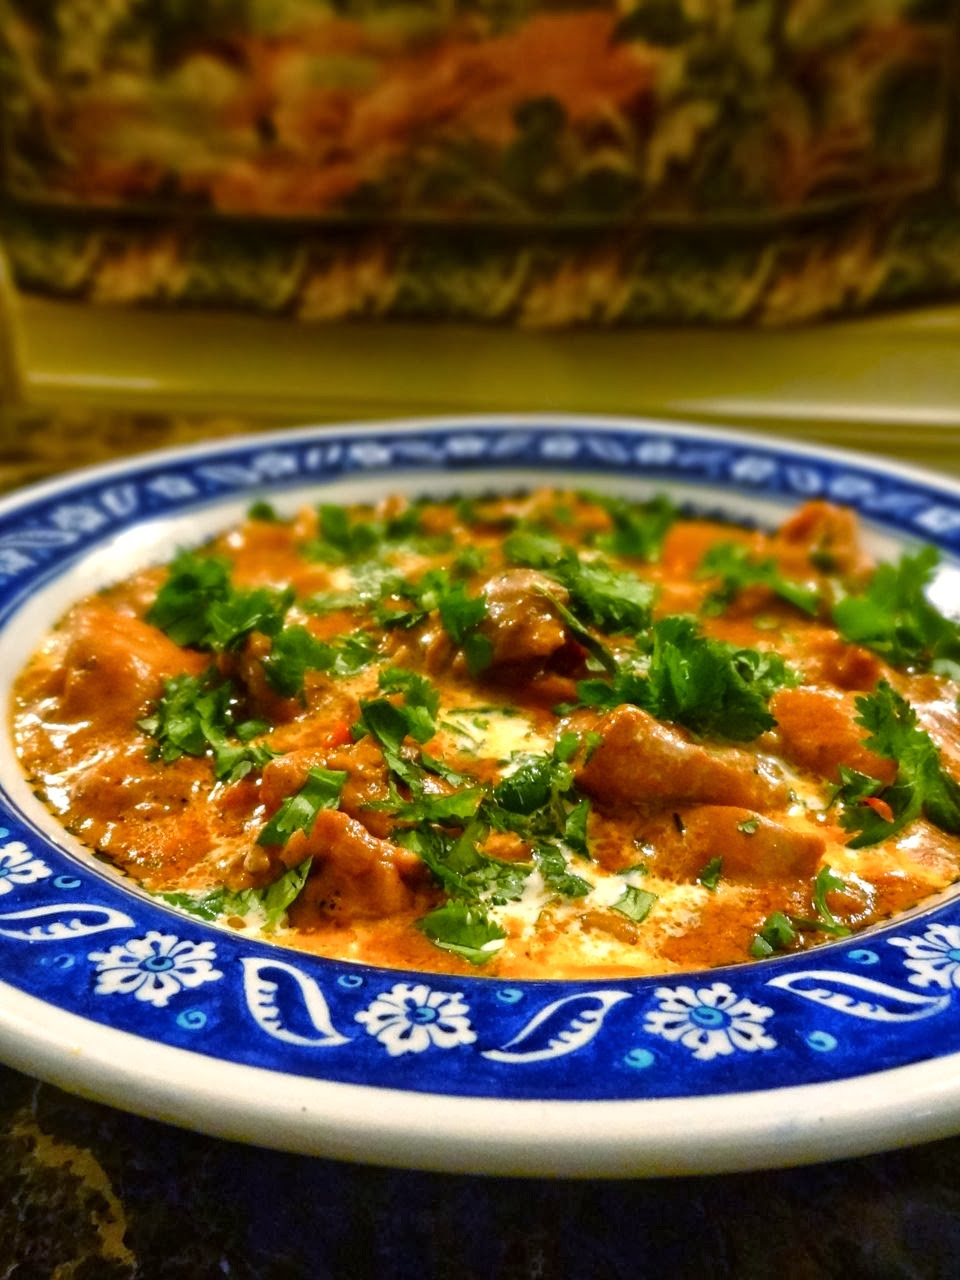 Scrumpdillyicious: West African Chicken Mafé in Peanut Sauce